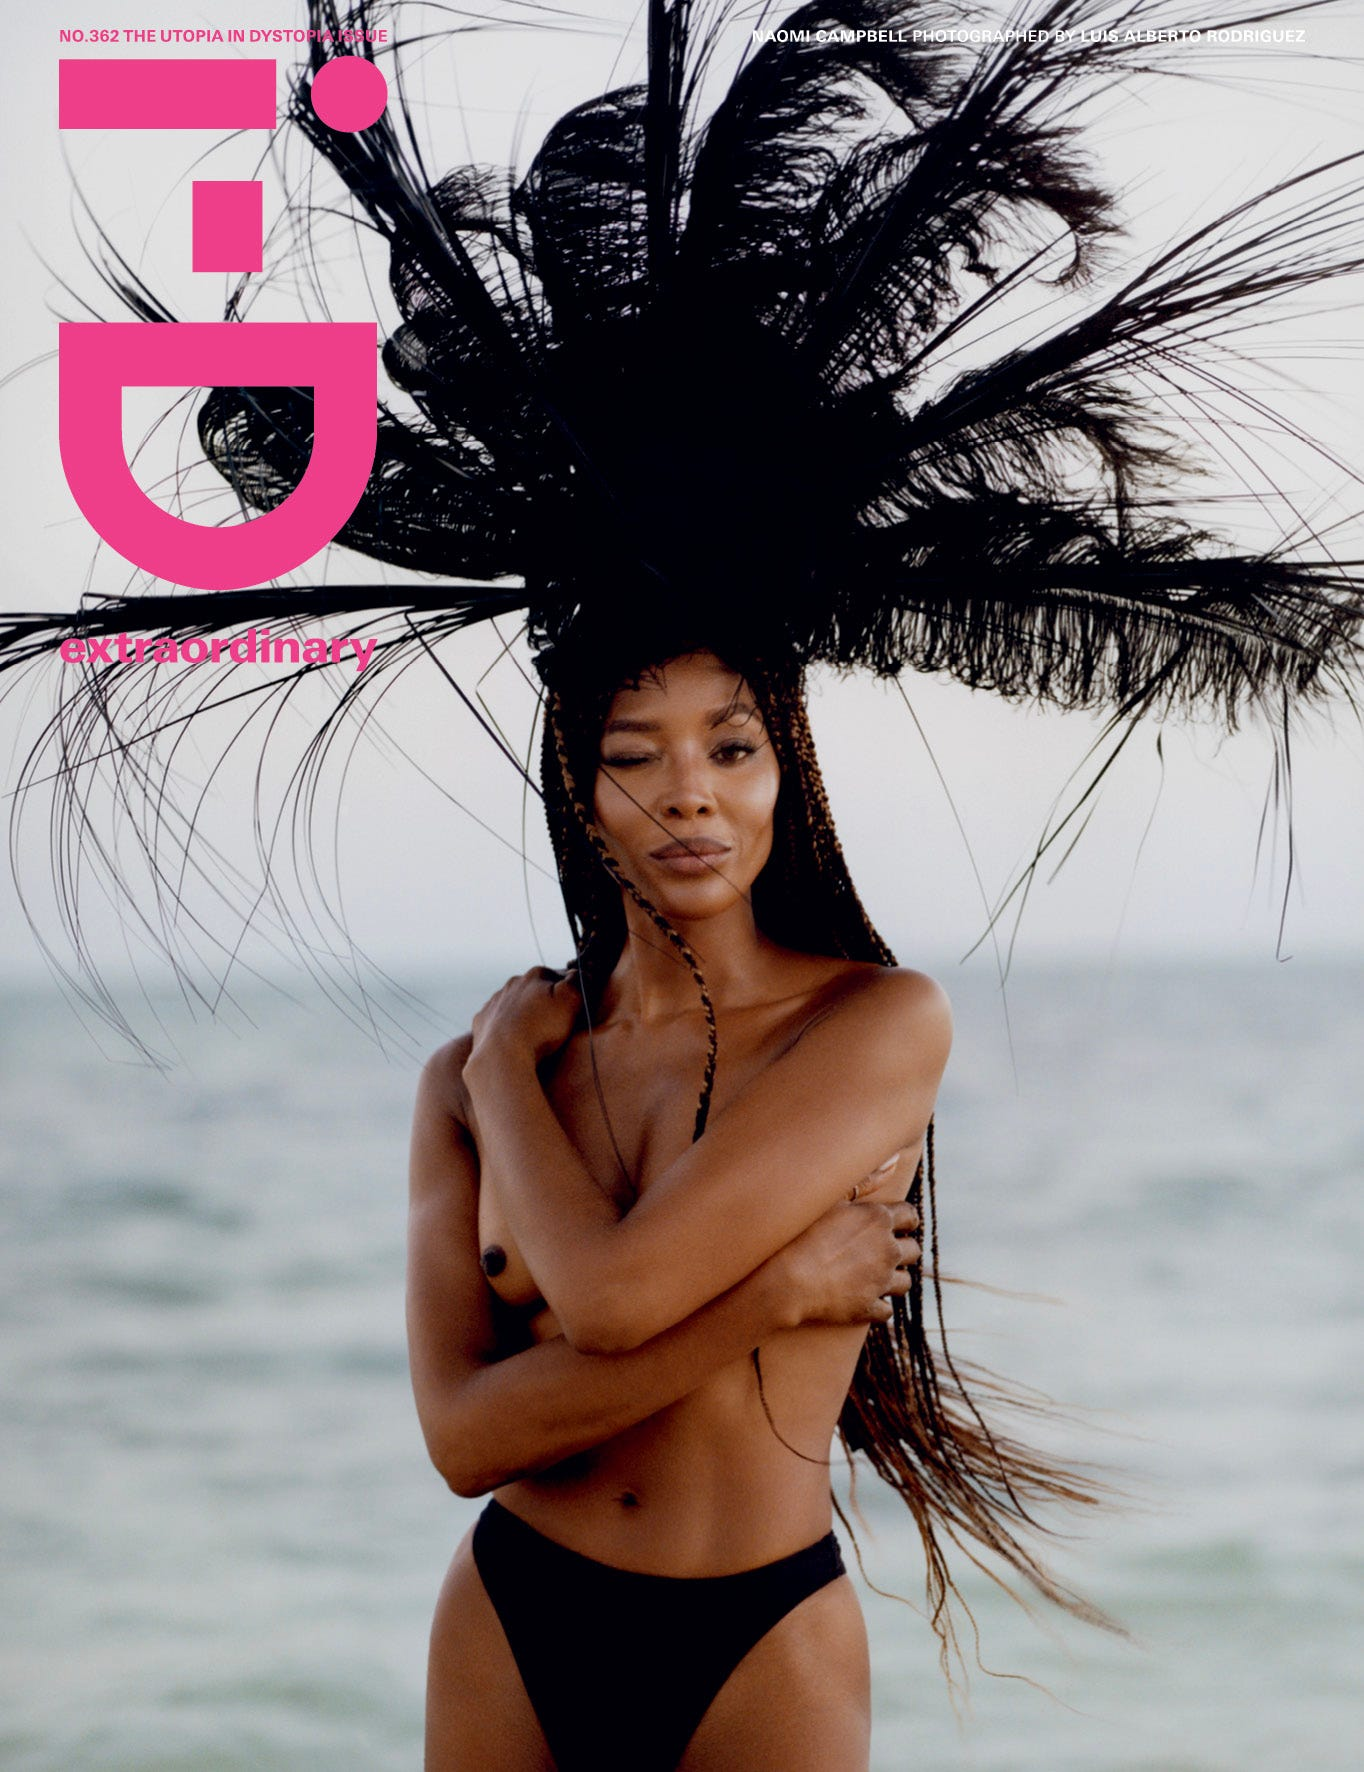 iD362_COVER_Naomi_Campbell_SPINE_26_01_21_1-LR.jpg